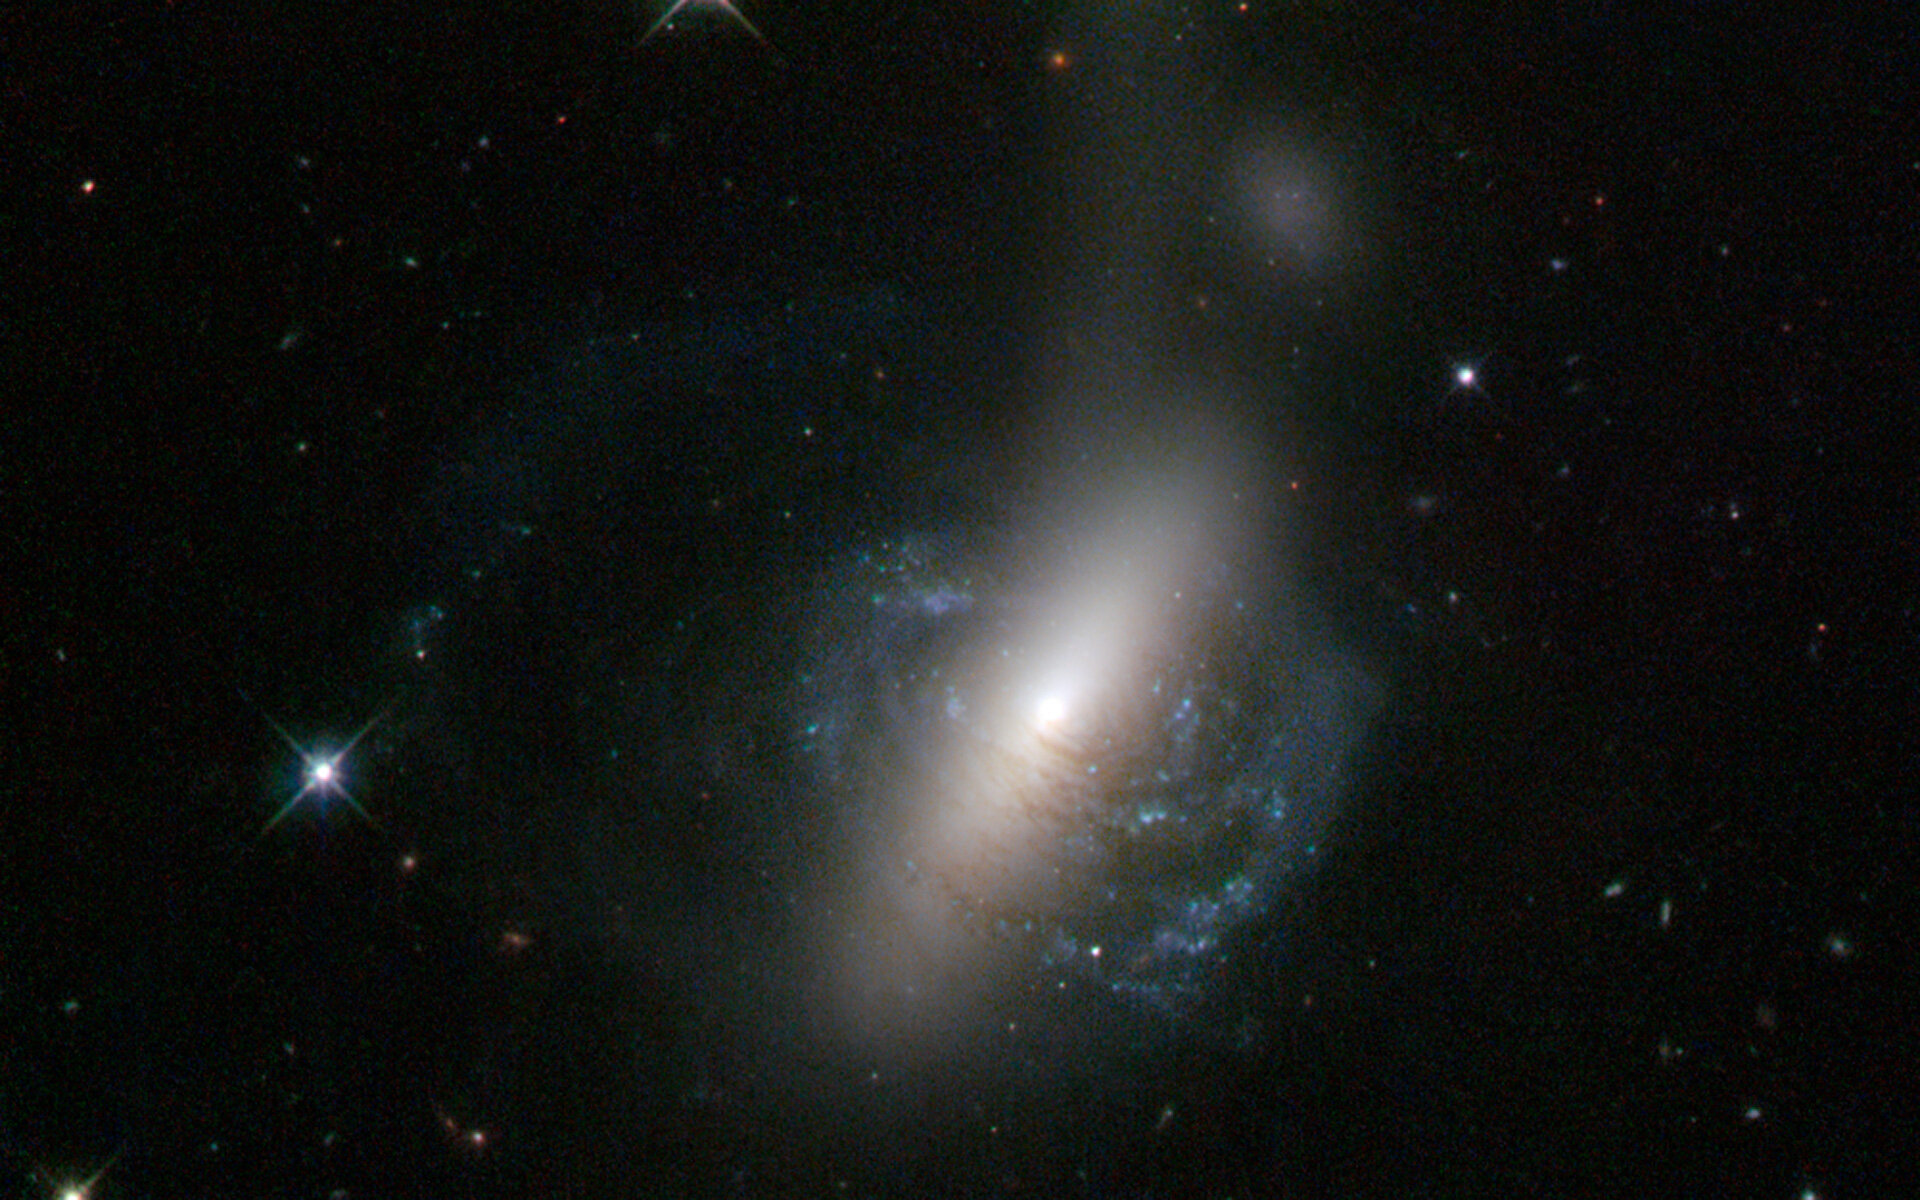 The messy result of a galactic collision